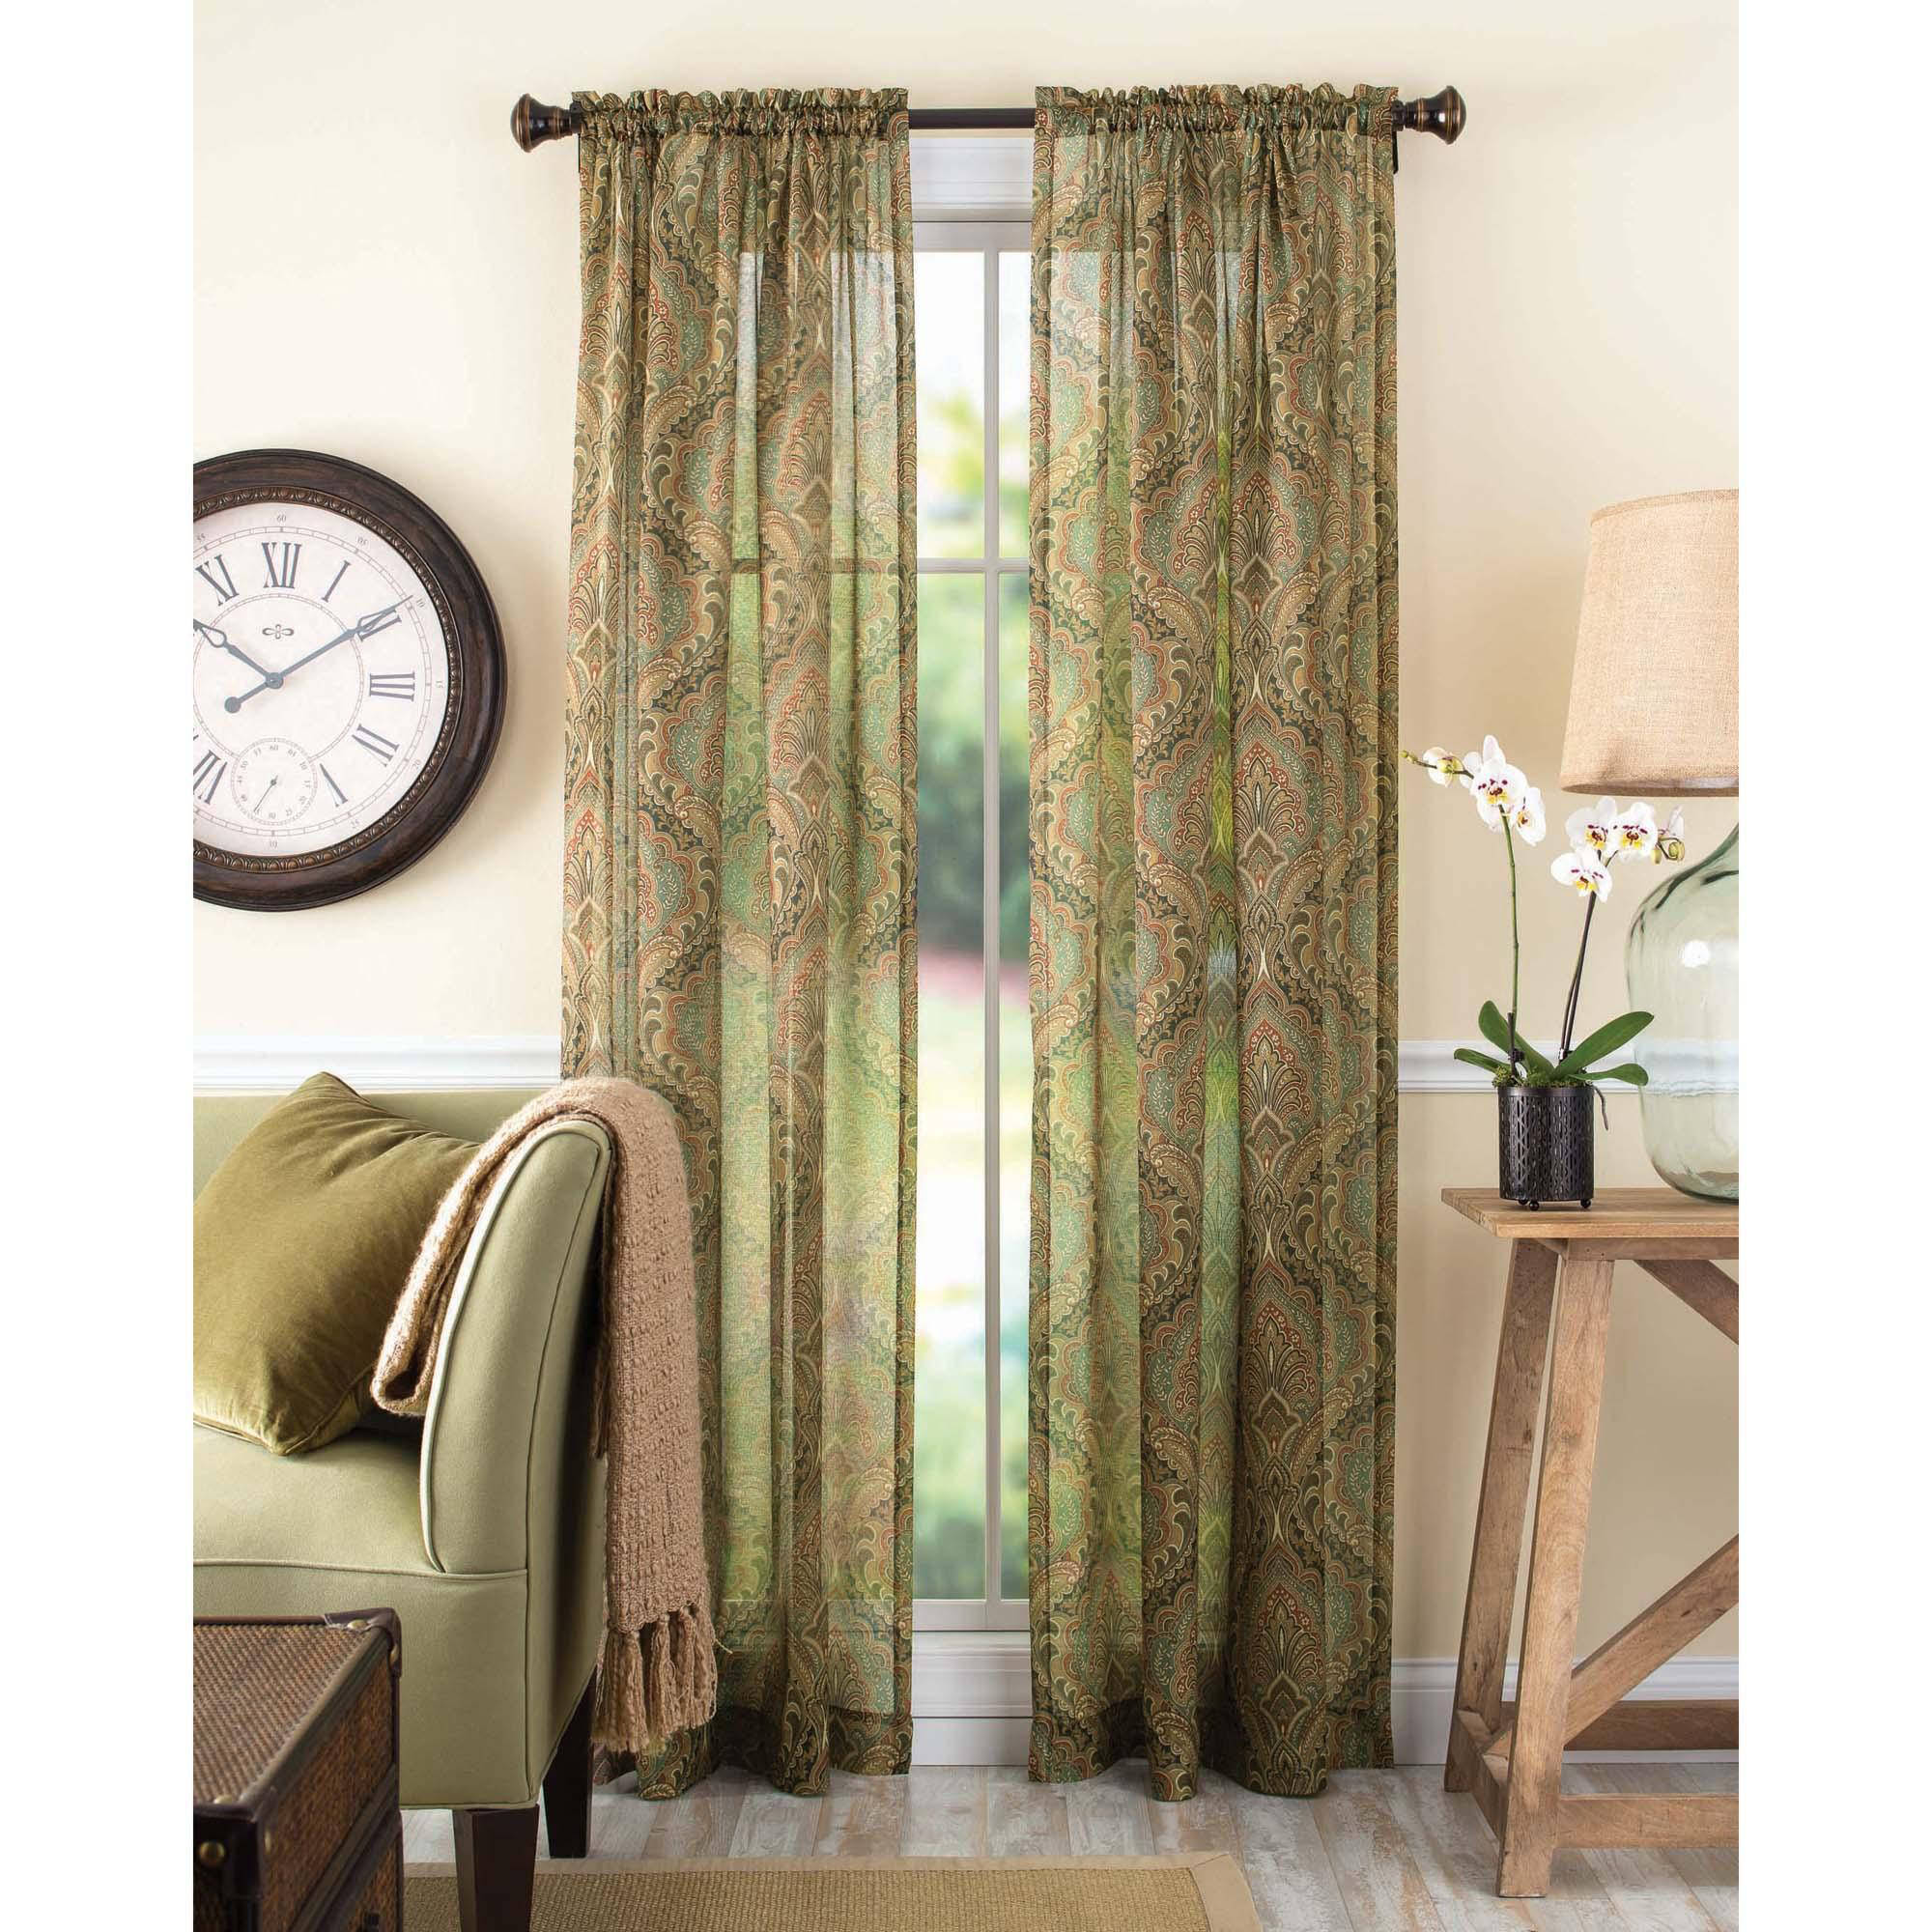 Better Homes and Gardens Tapestry Sheer Curtain Panel Walmart com. Walmart Sheers Curtains